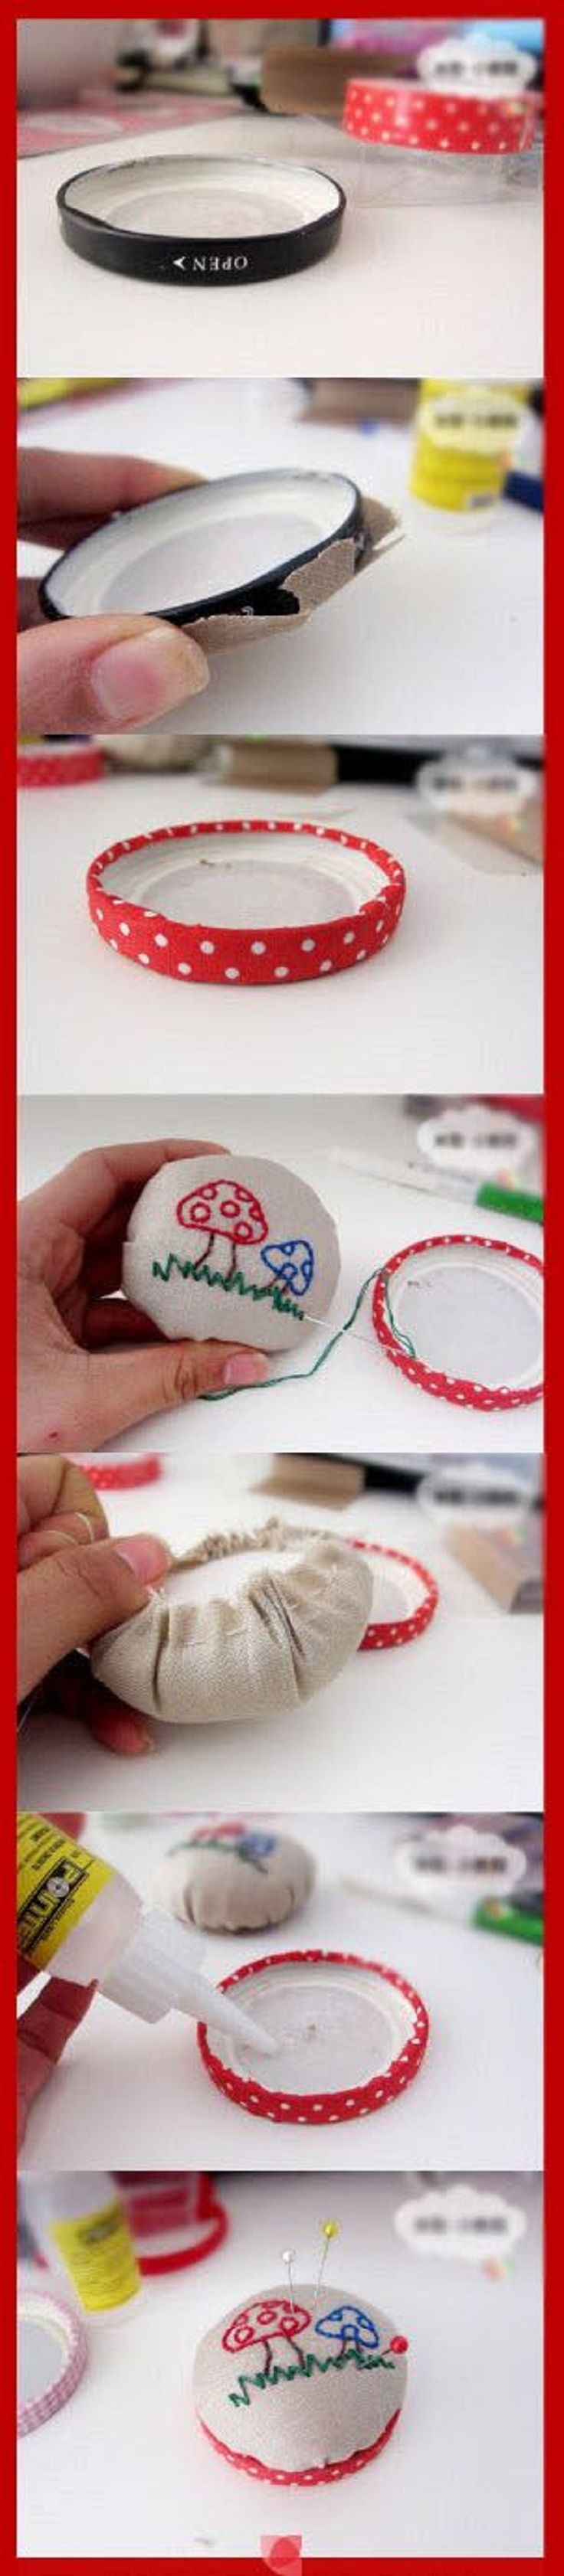 Some simple finishing ideas for needlework!